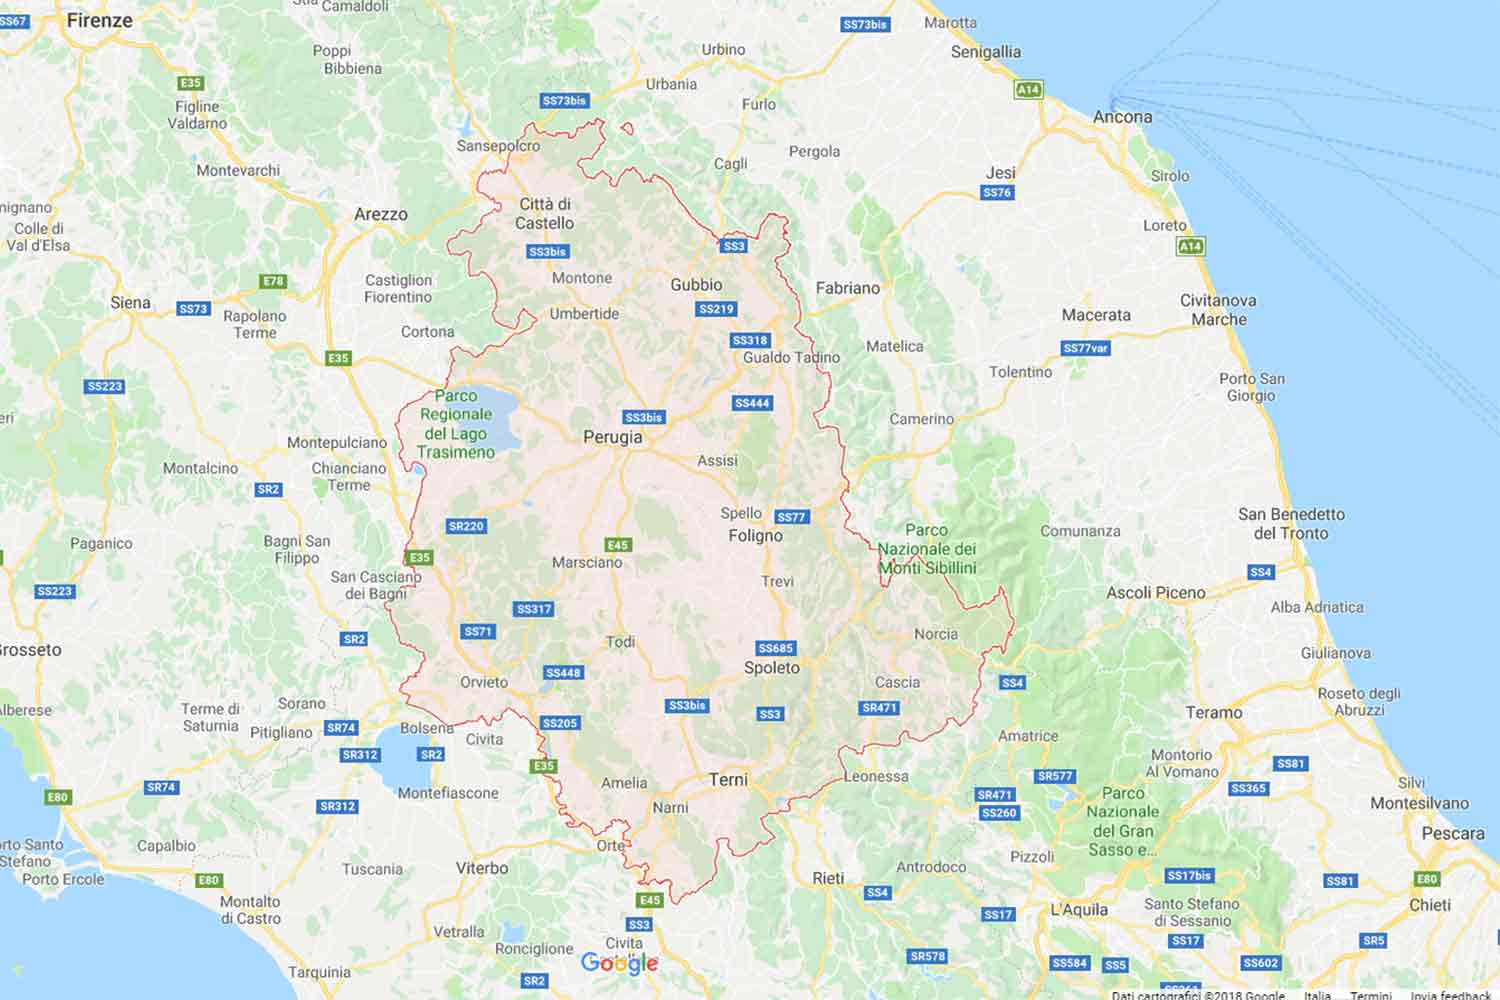 Umbria - Perugia - Sellano Preventivi Veloci google maps